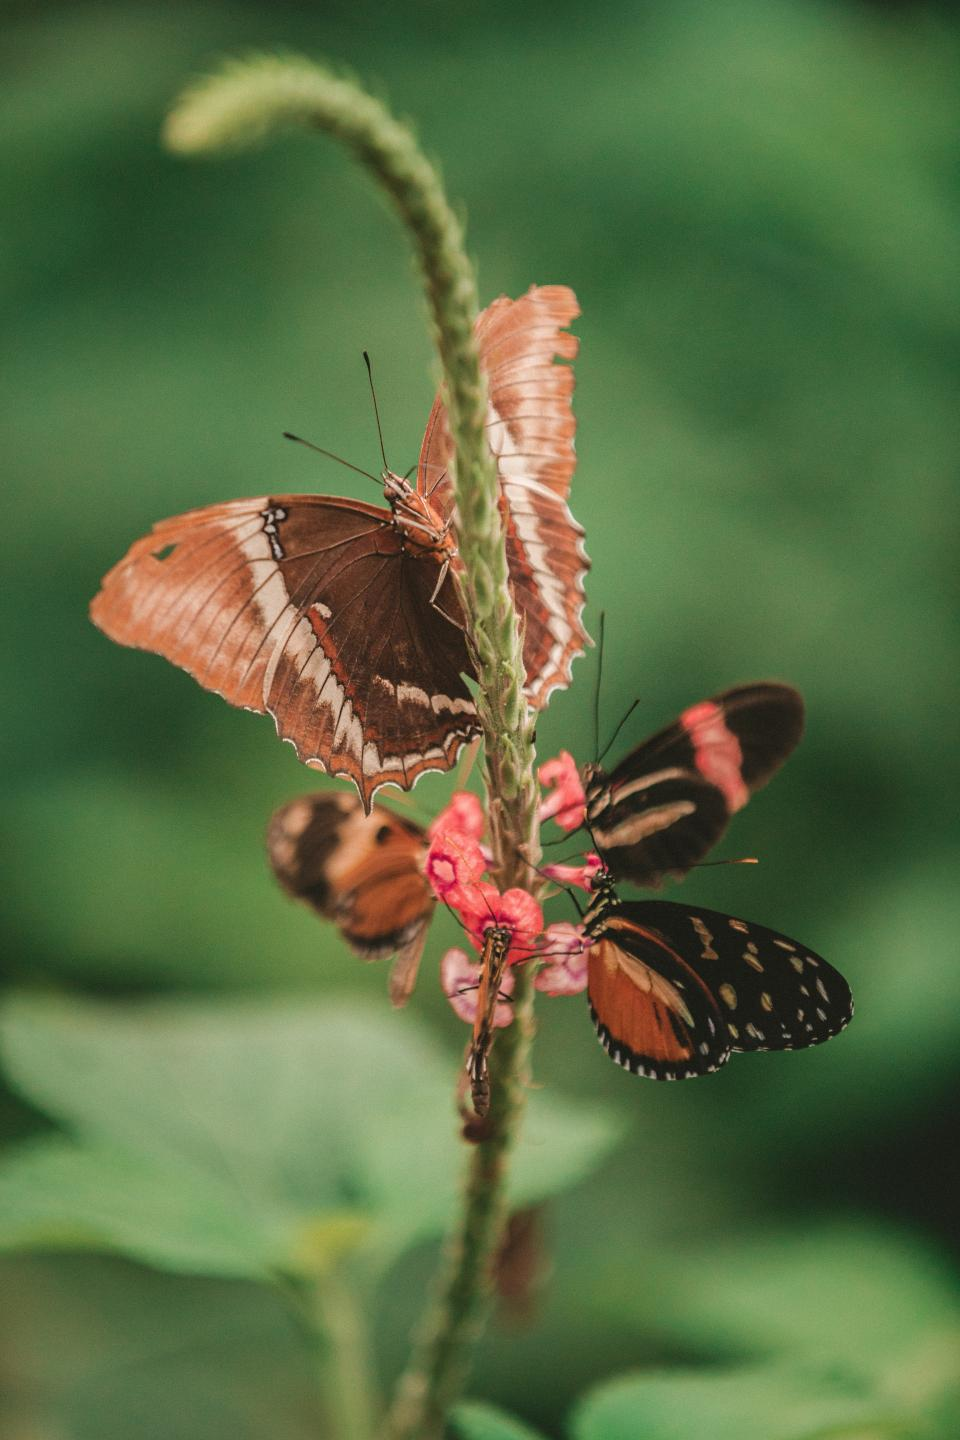 butterfly, moth, insect, macro, close up, nectar, pollen, flower, autumn, fall, red